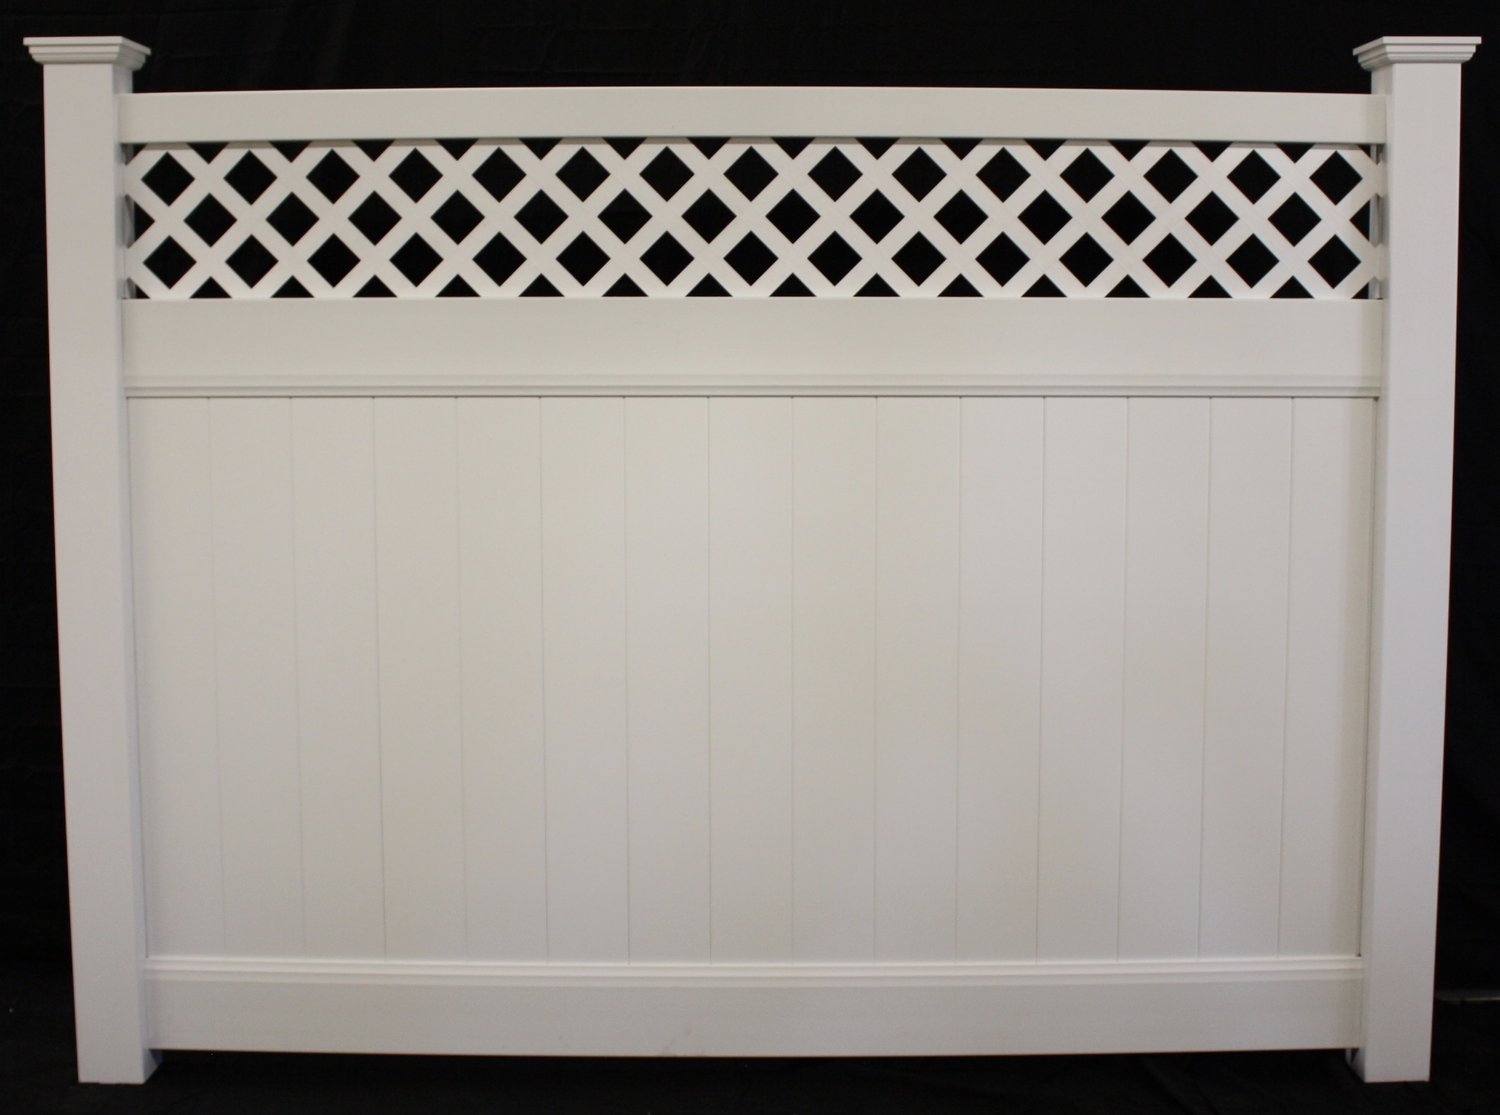 Privacy vinyl lattice top vinyl fence panel buyvinylfence privacy vinyl lattice top vinyl fence panel baanklon Choice Image